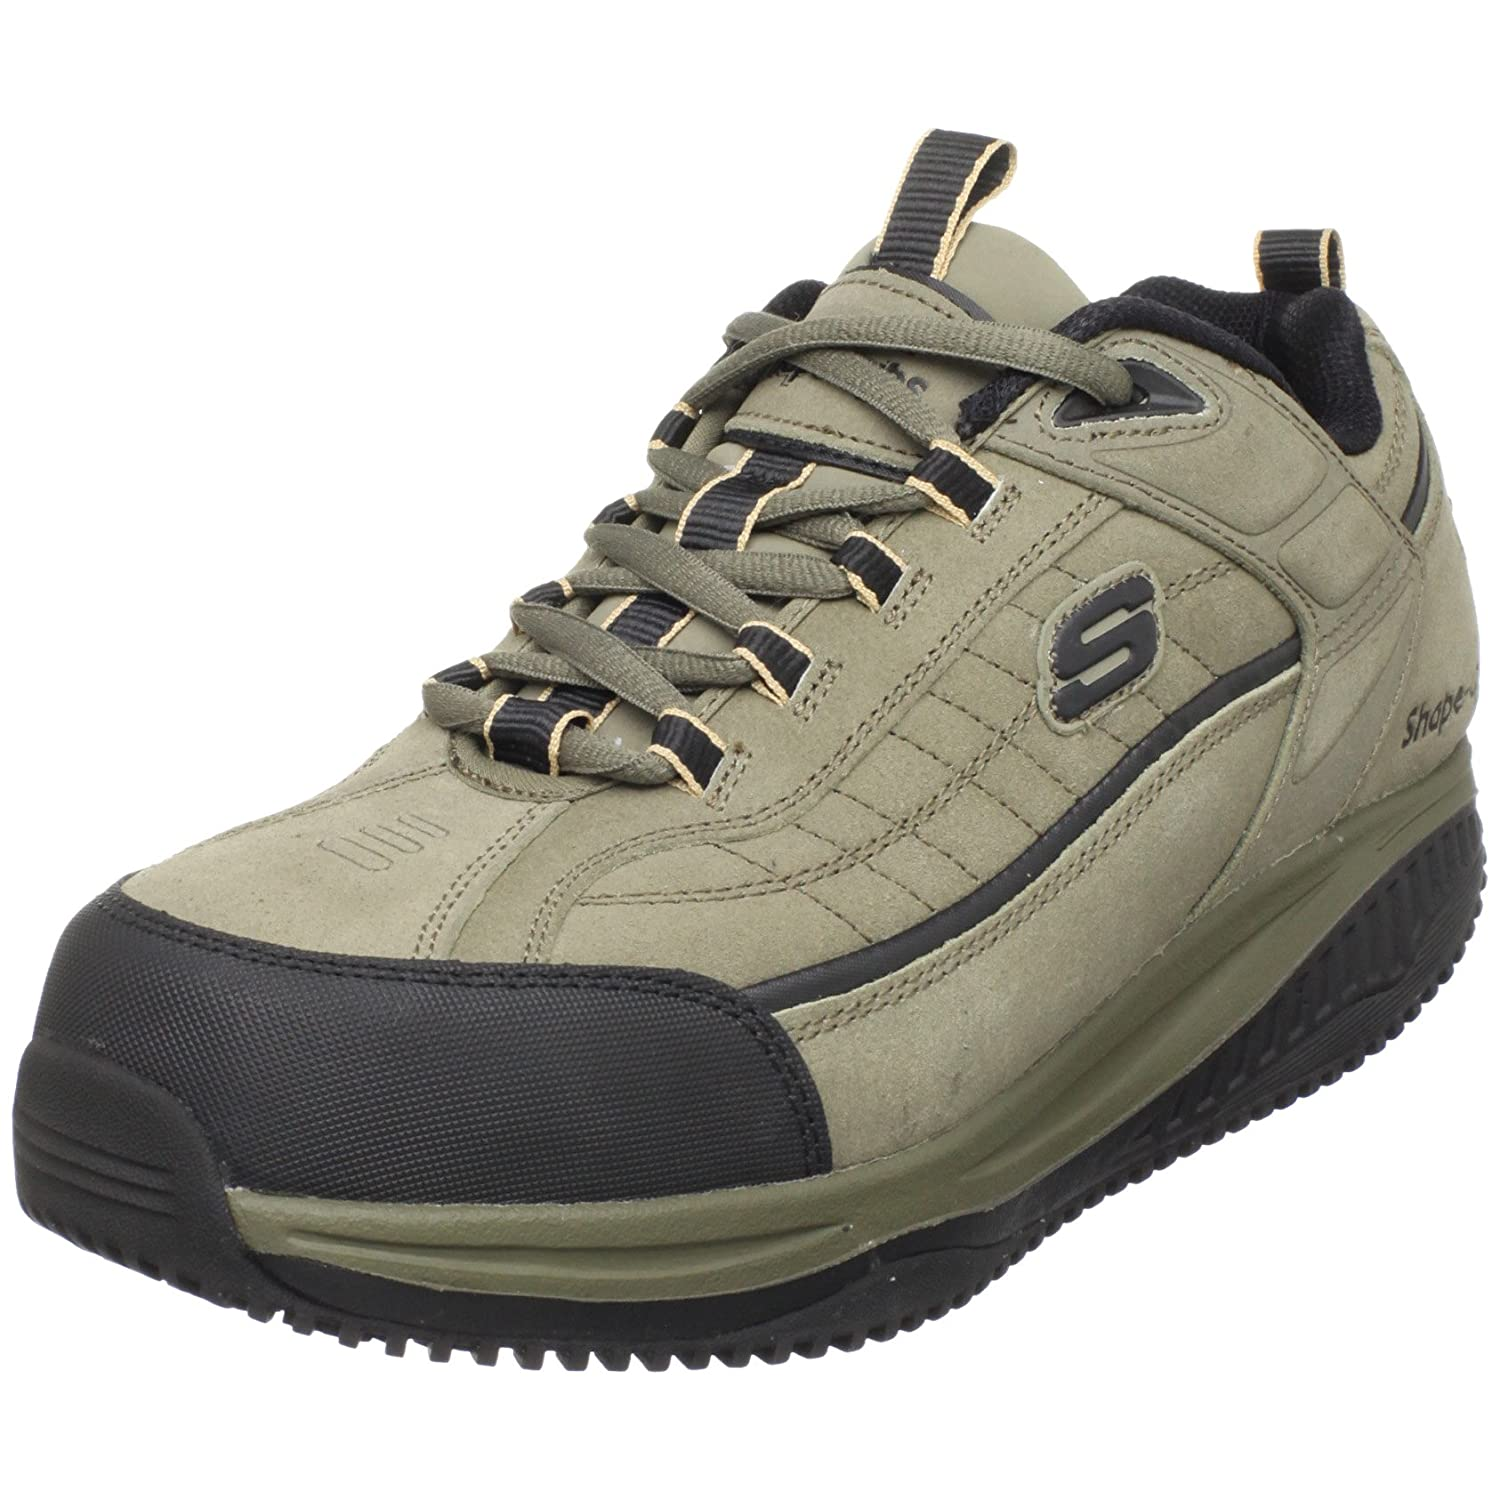 shoes boots floors work budget wolverine reviews on best archives concrete boot for a